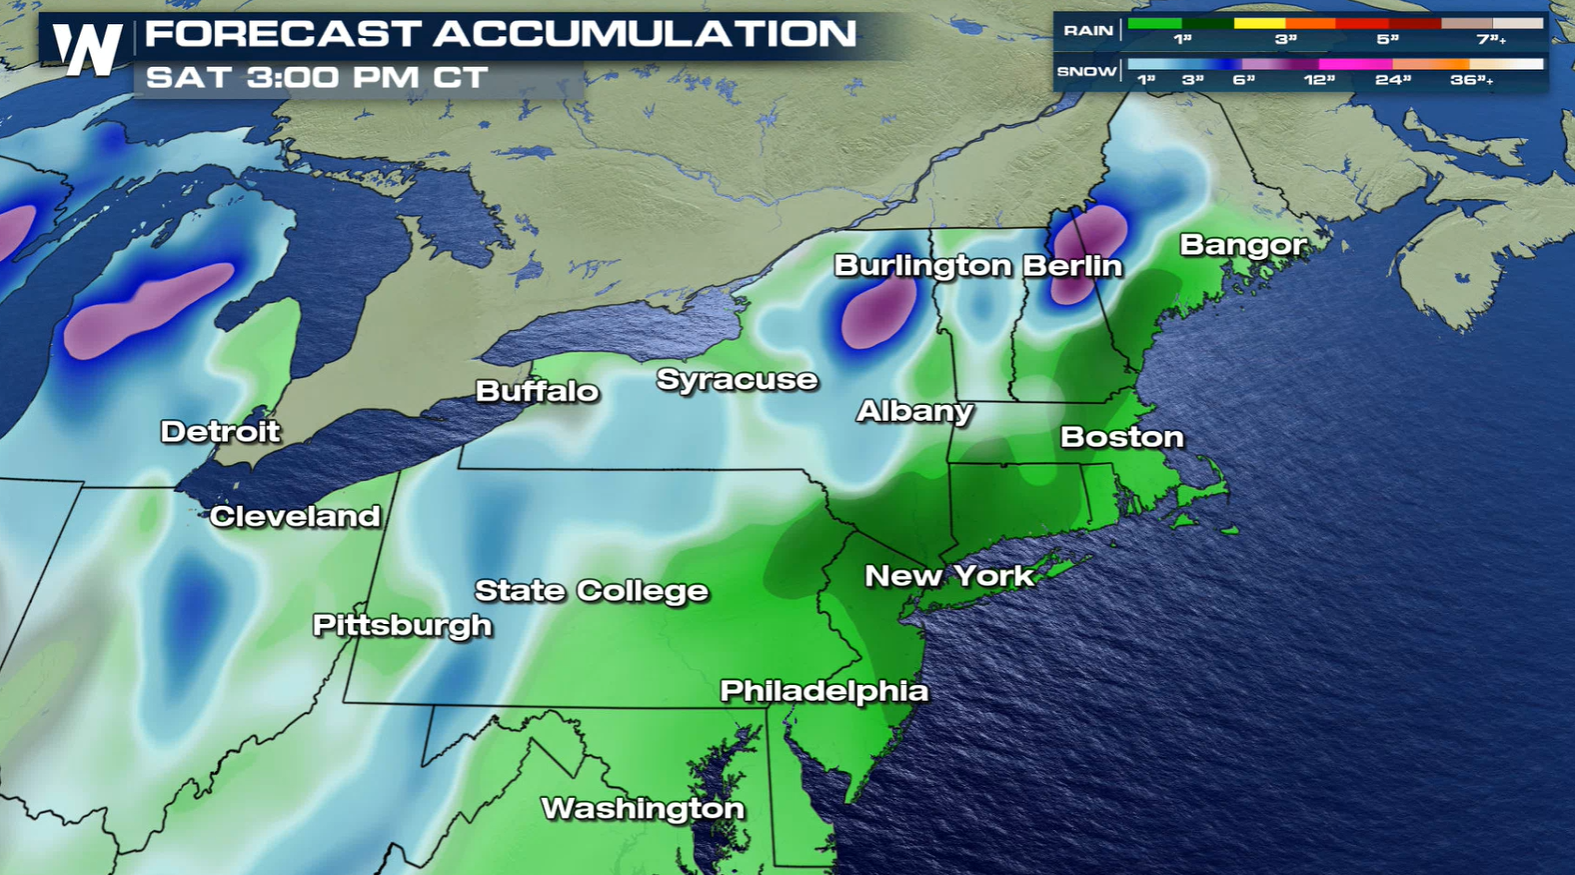 Late-Week Storm to Bring Colder Air and Snow to the Northeast